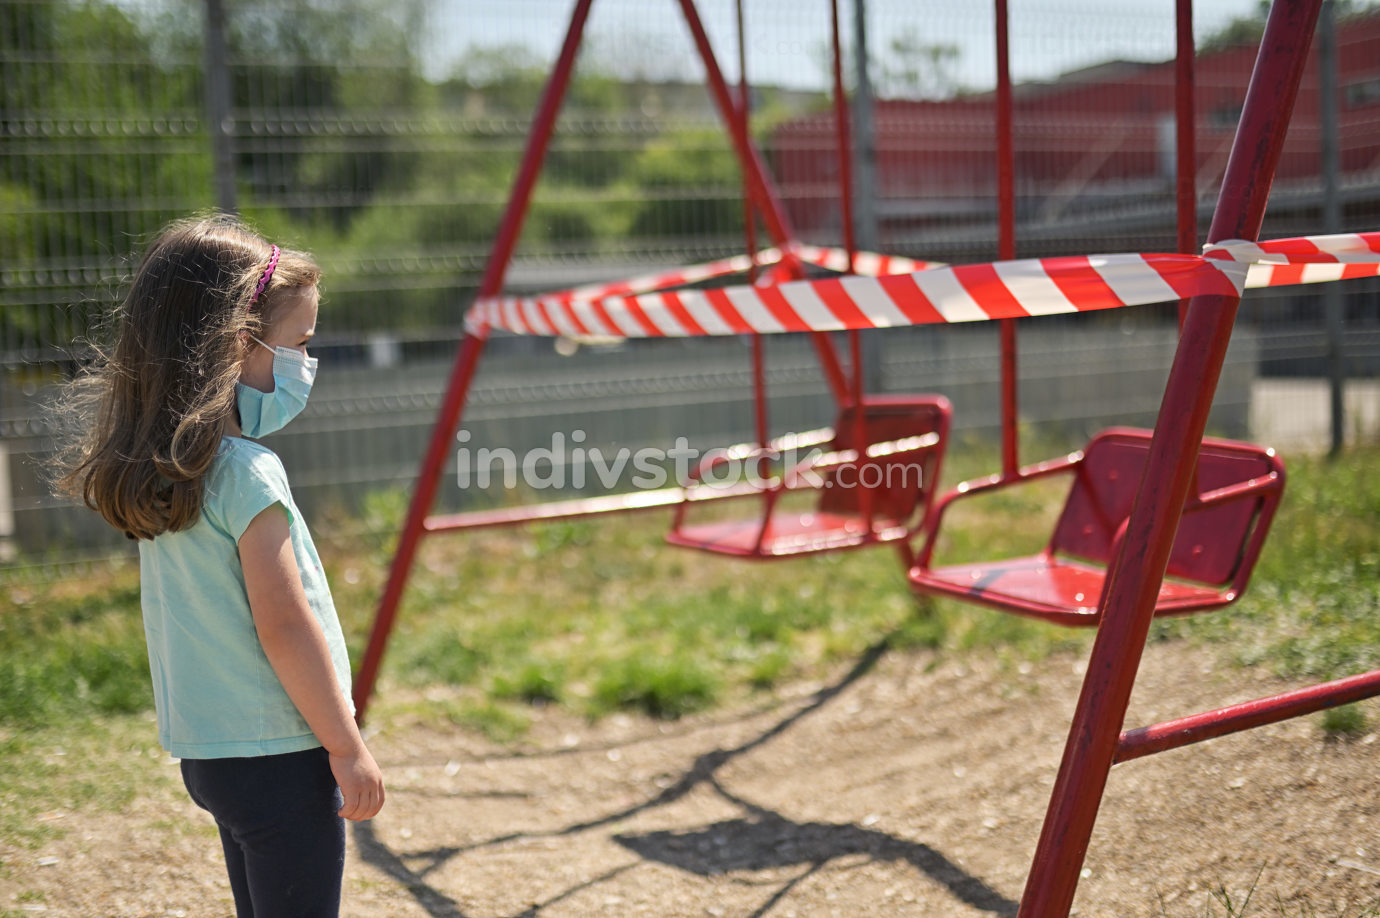 Alone Girl and Children's Swings  Wrapped With Signal Tape